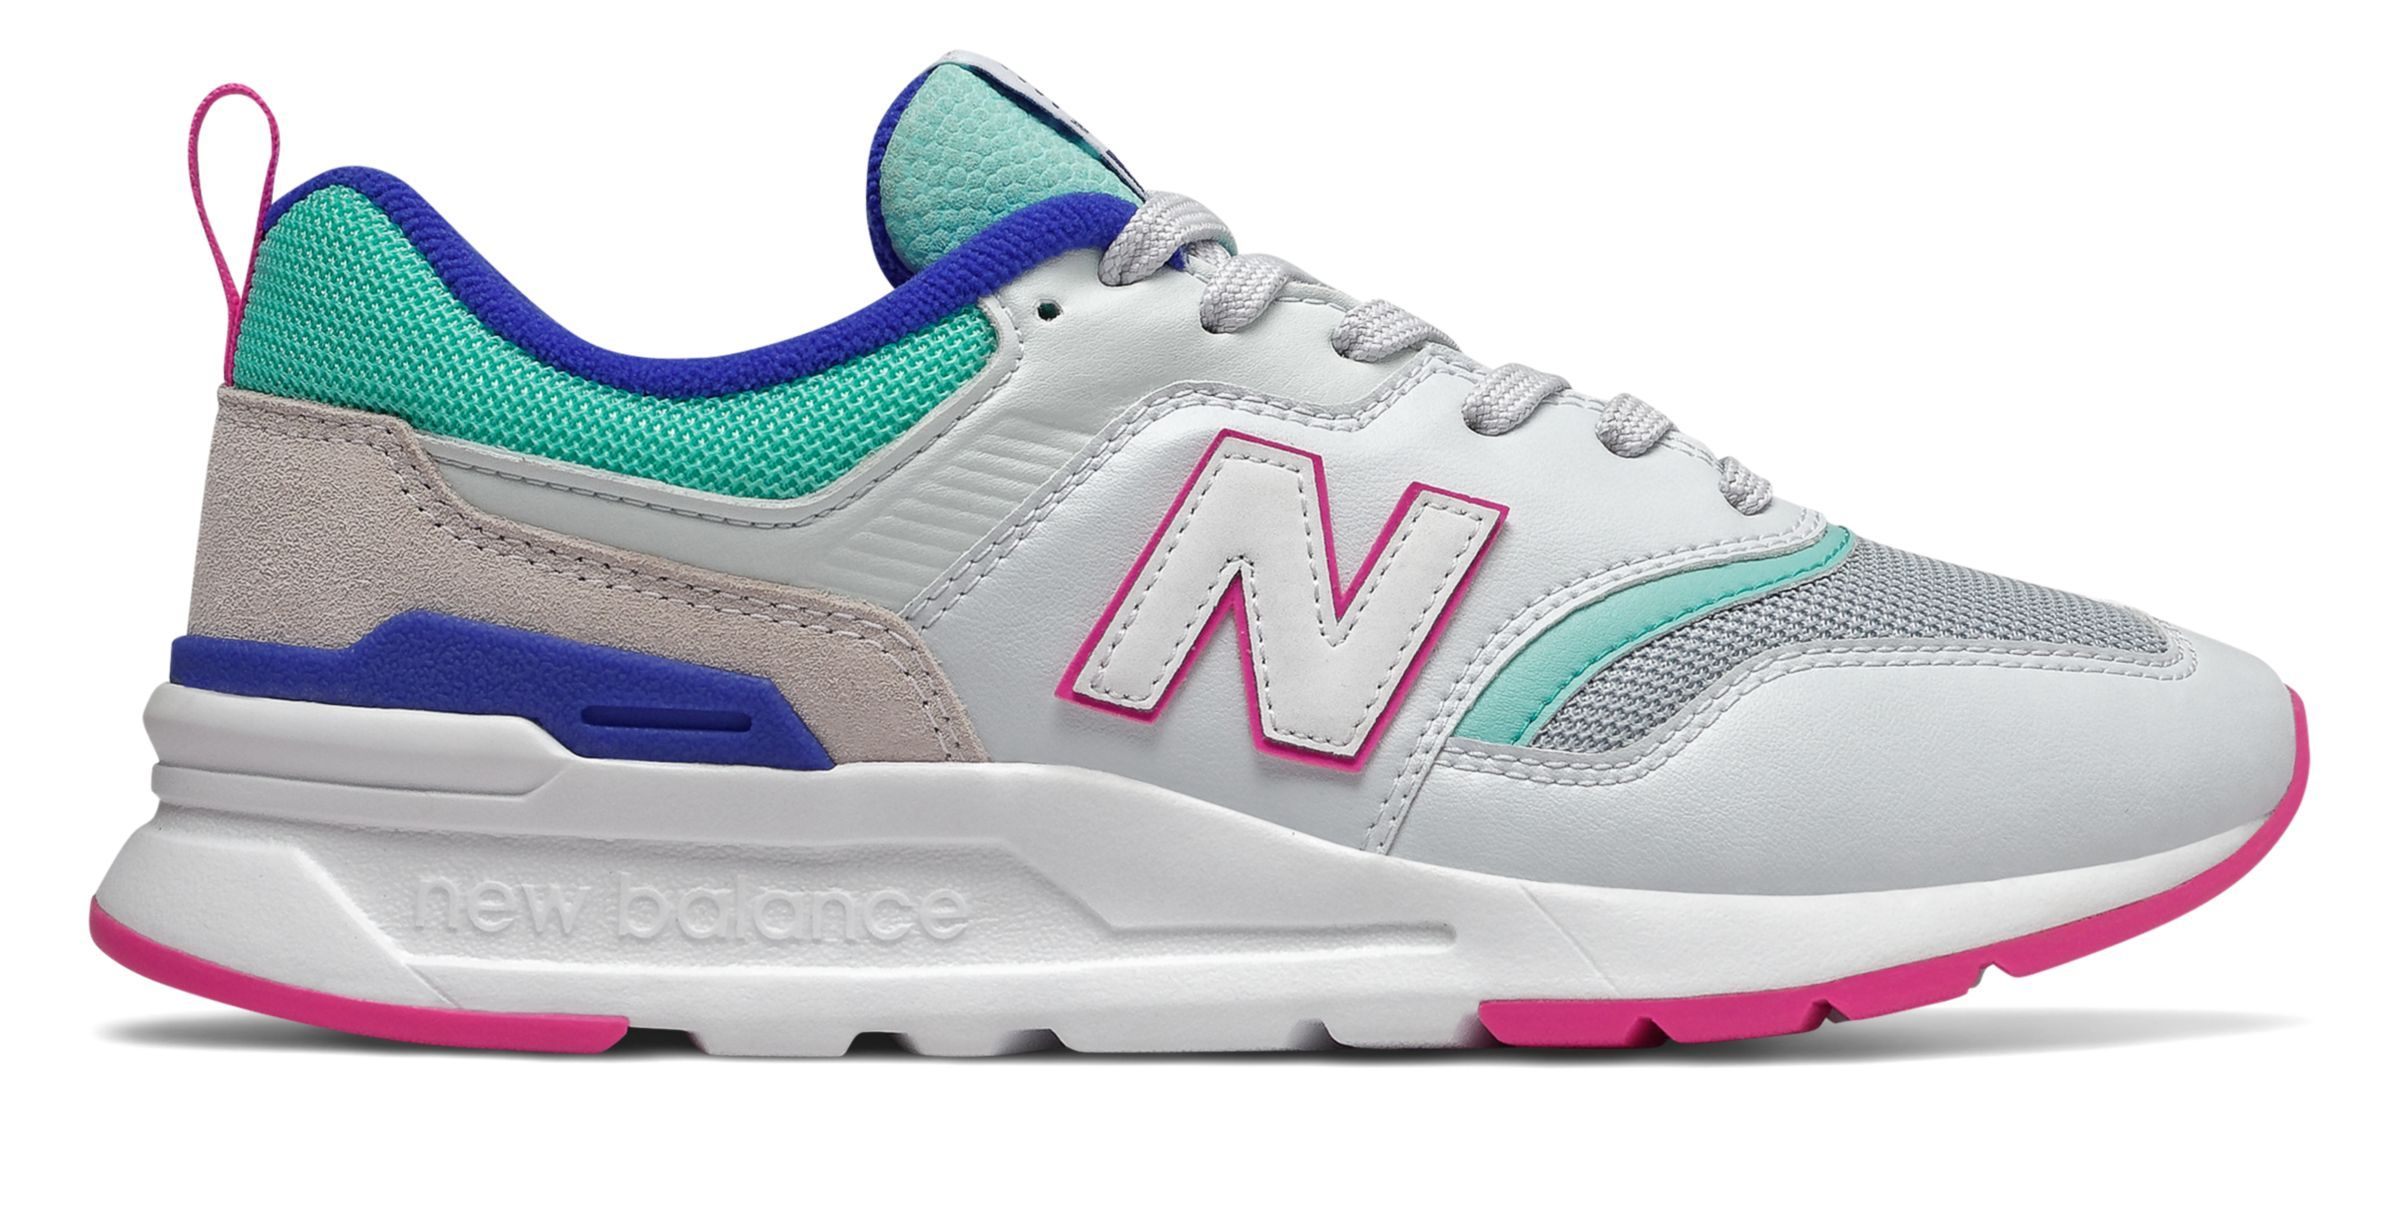 Women's 997H in 2020 | Retro sneakers, New balance, Sneakers